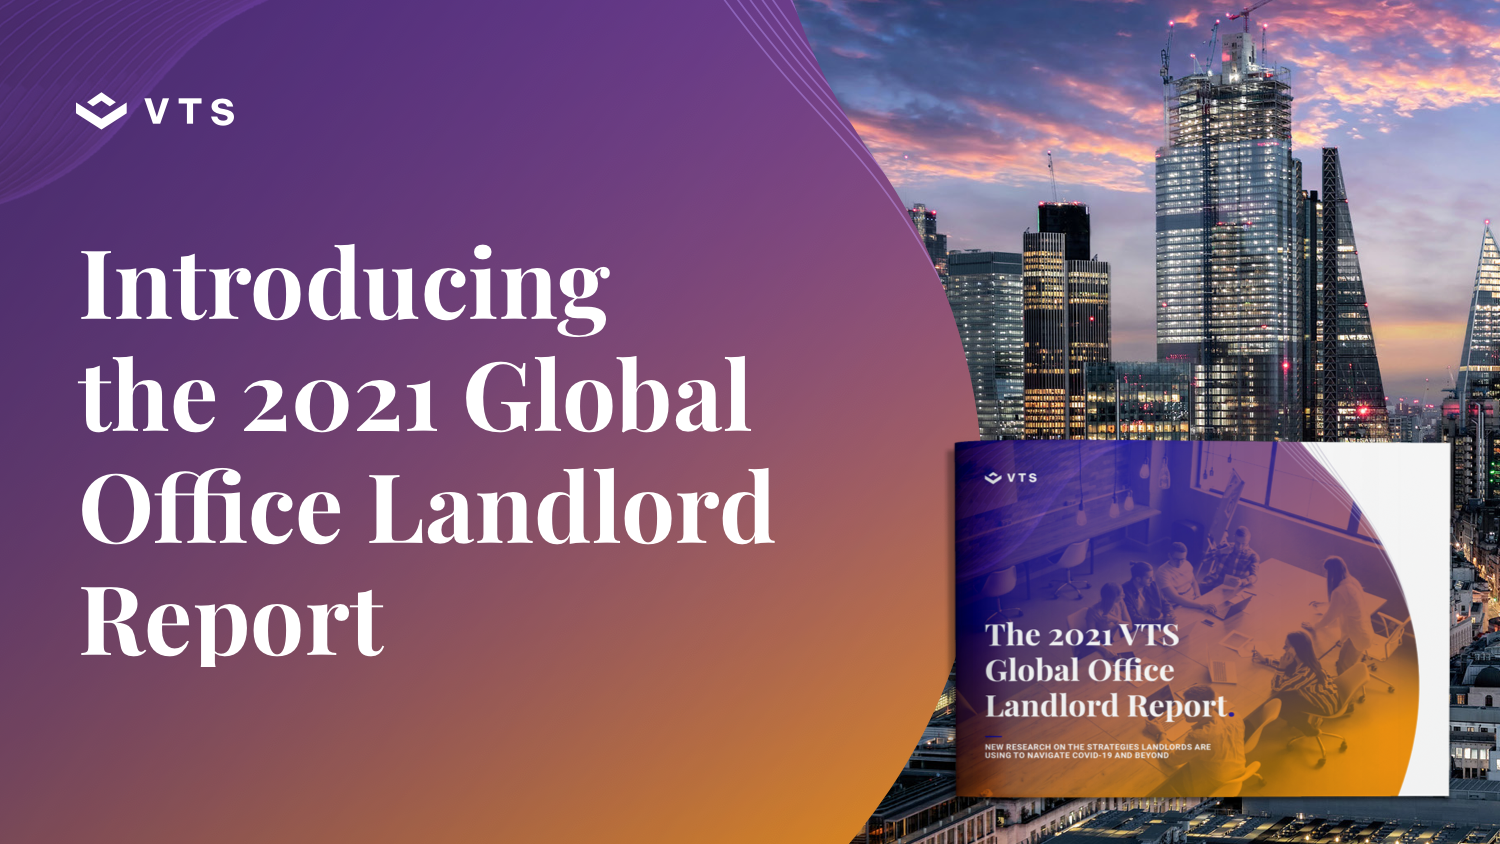 Introducing the 2021 Global Office Landlord Report